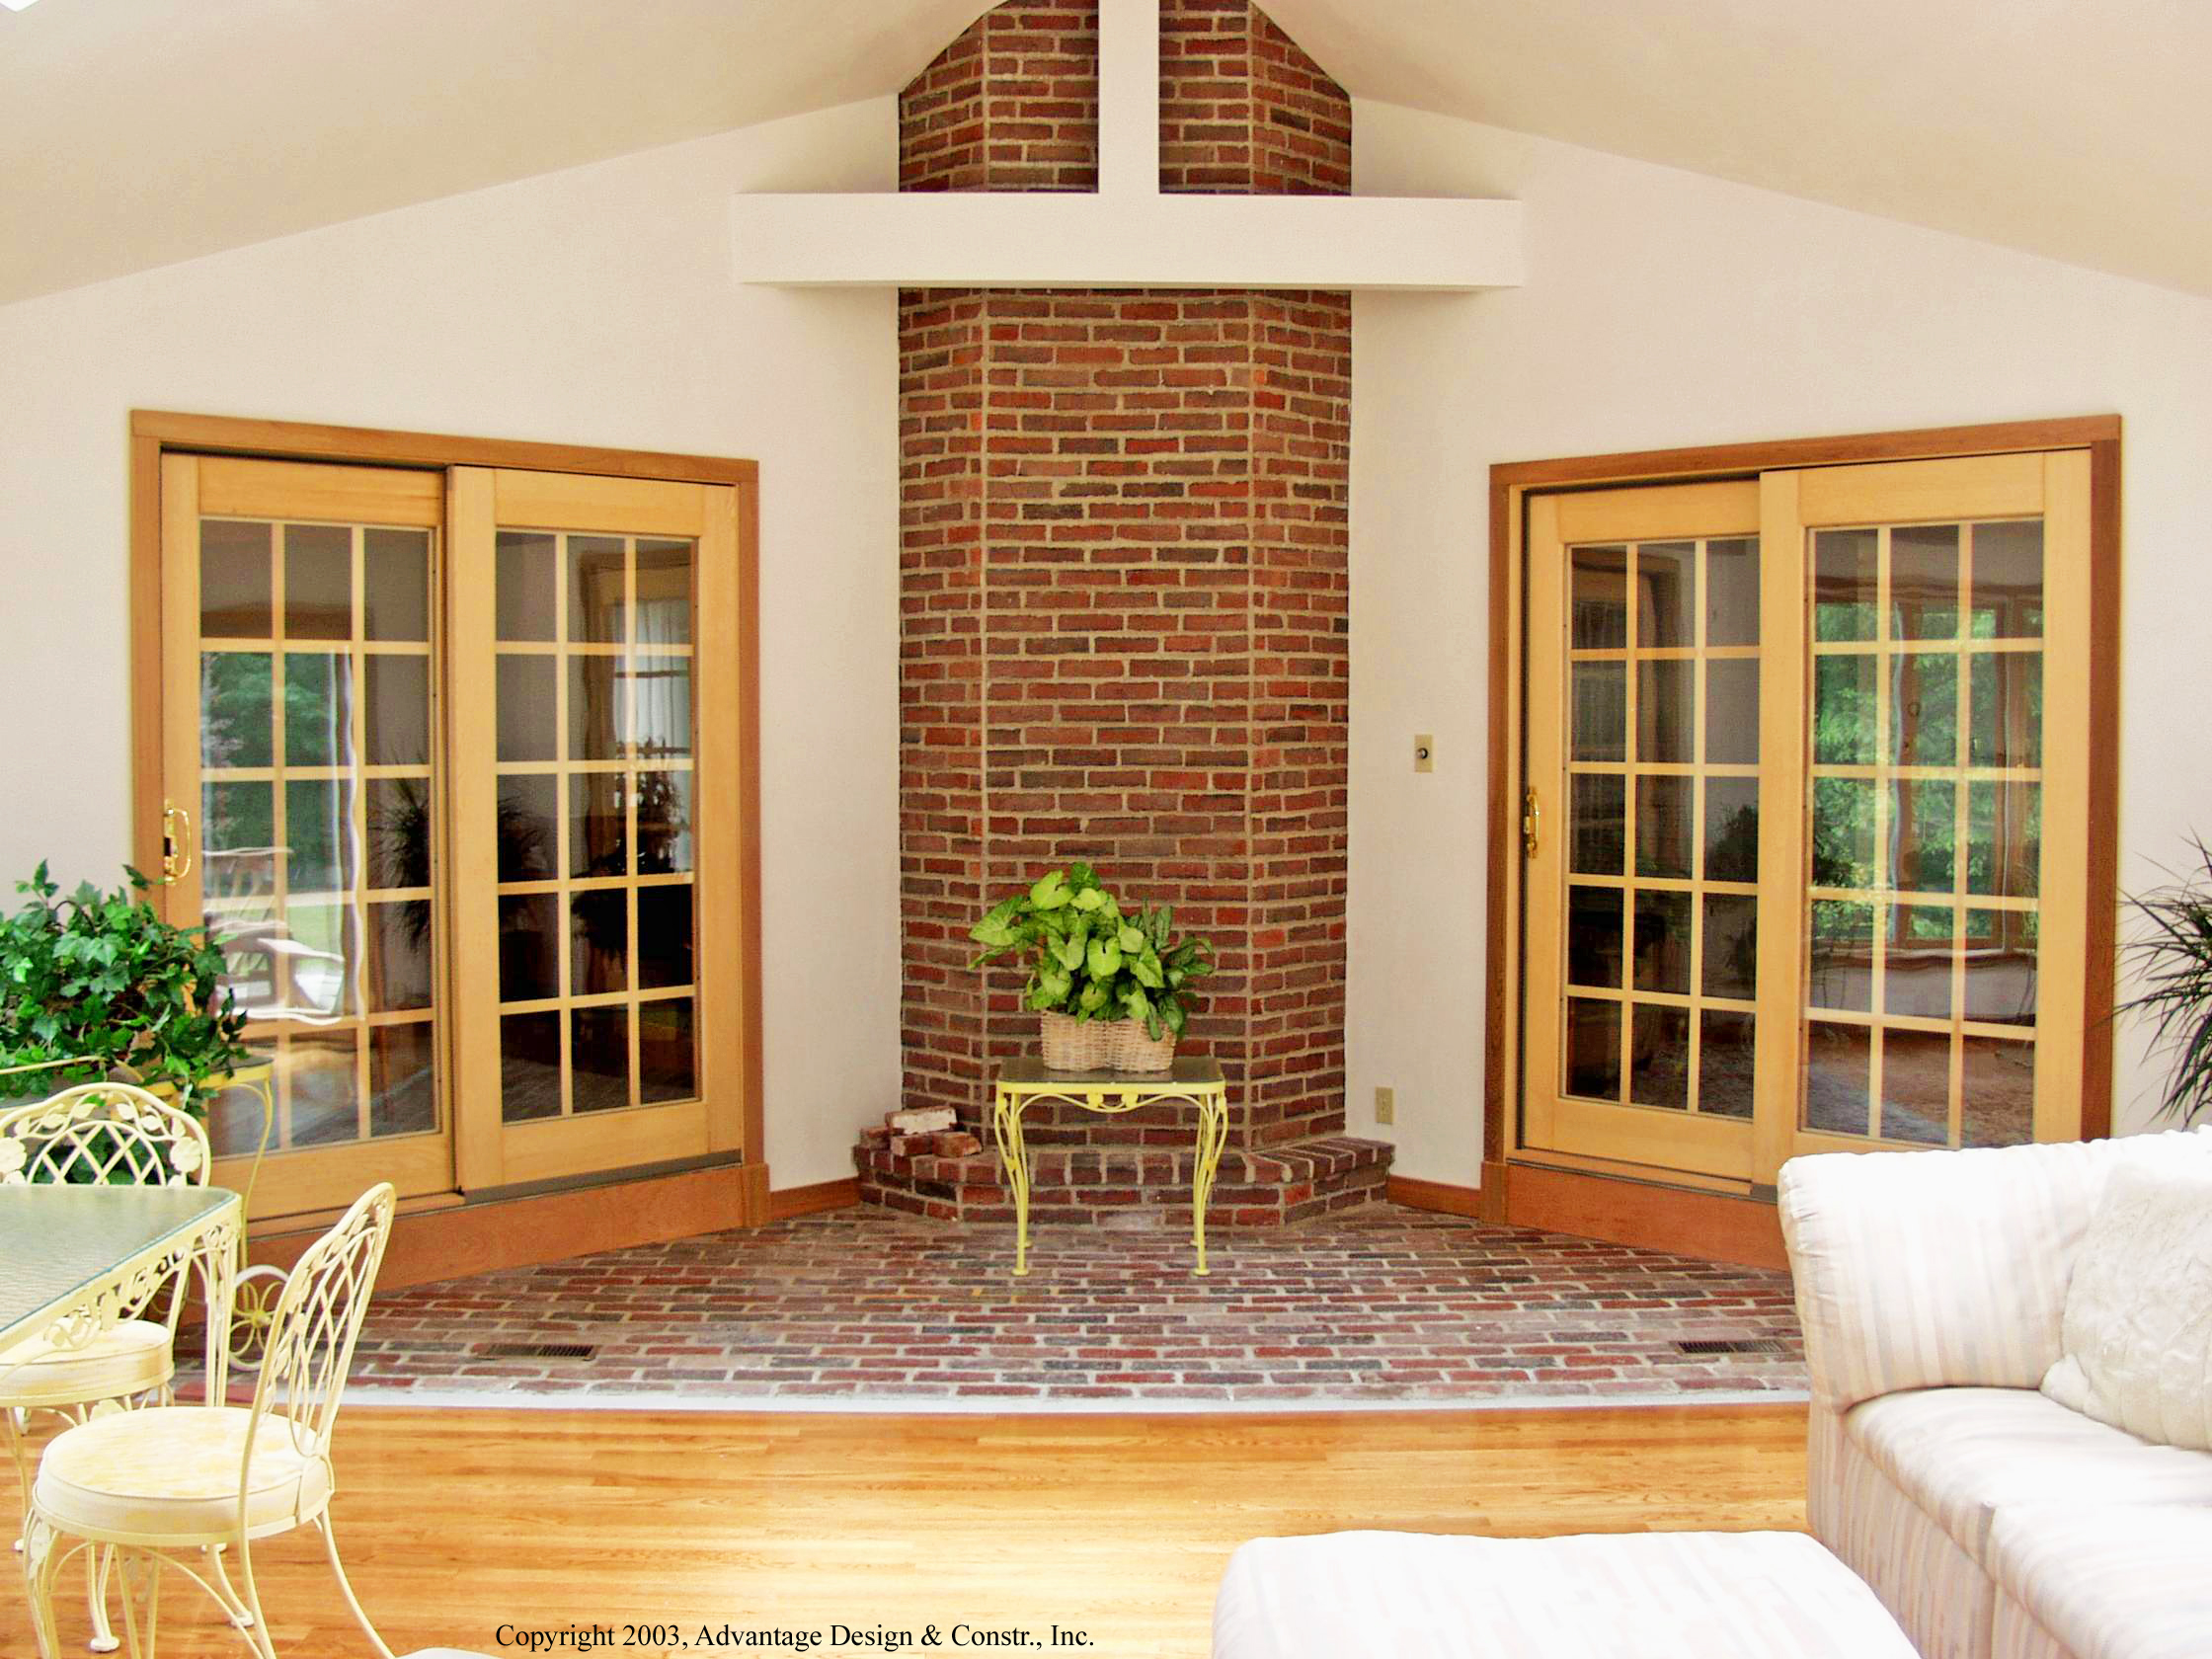 Octagonal Sunroom In Boxford, MA